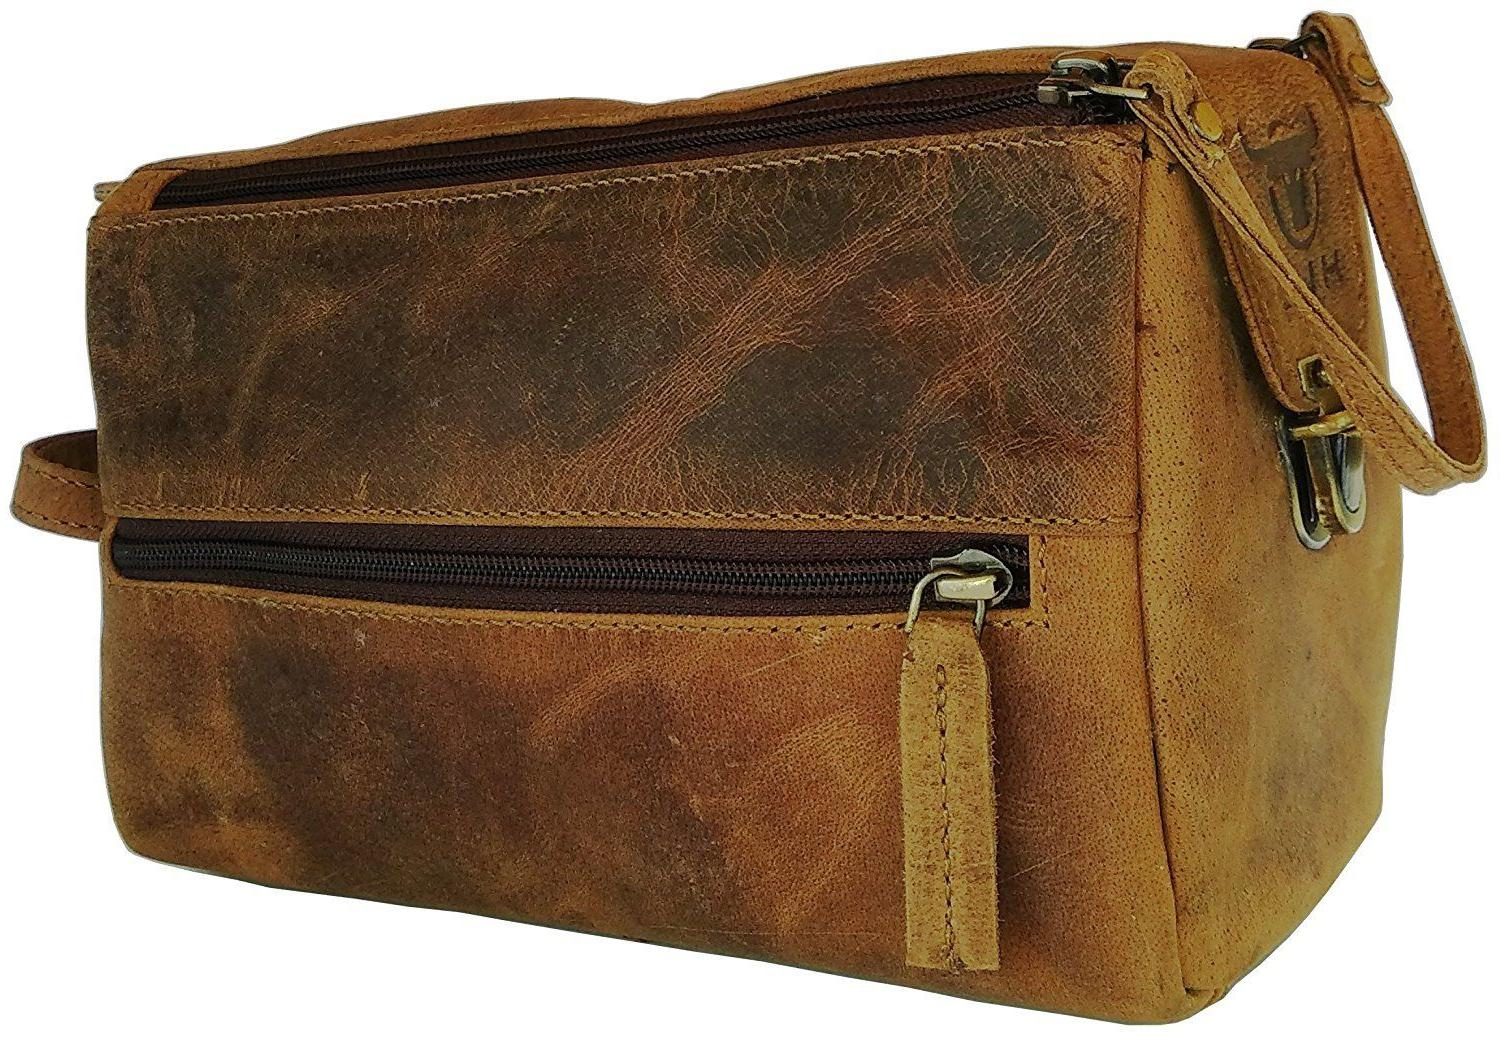 Vintage Leather Canvas Travel Toiletry Bag Shaving Dopp Kit